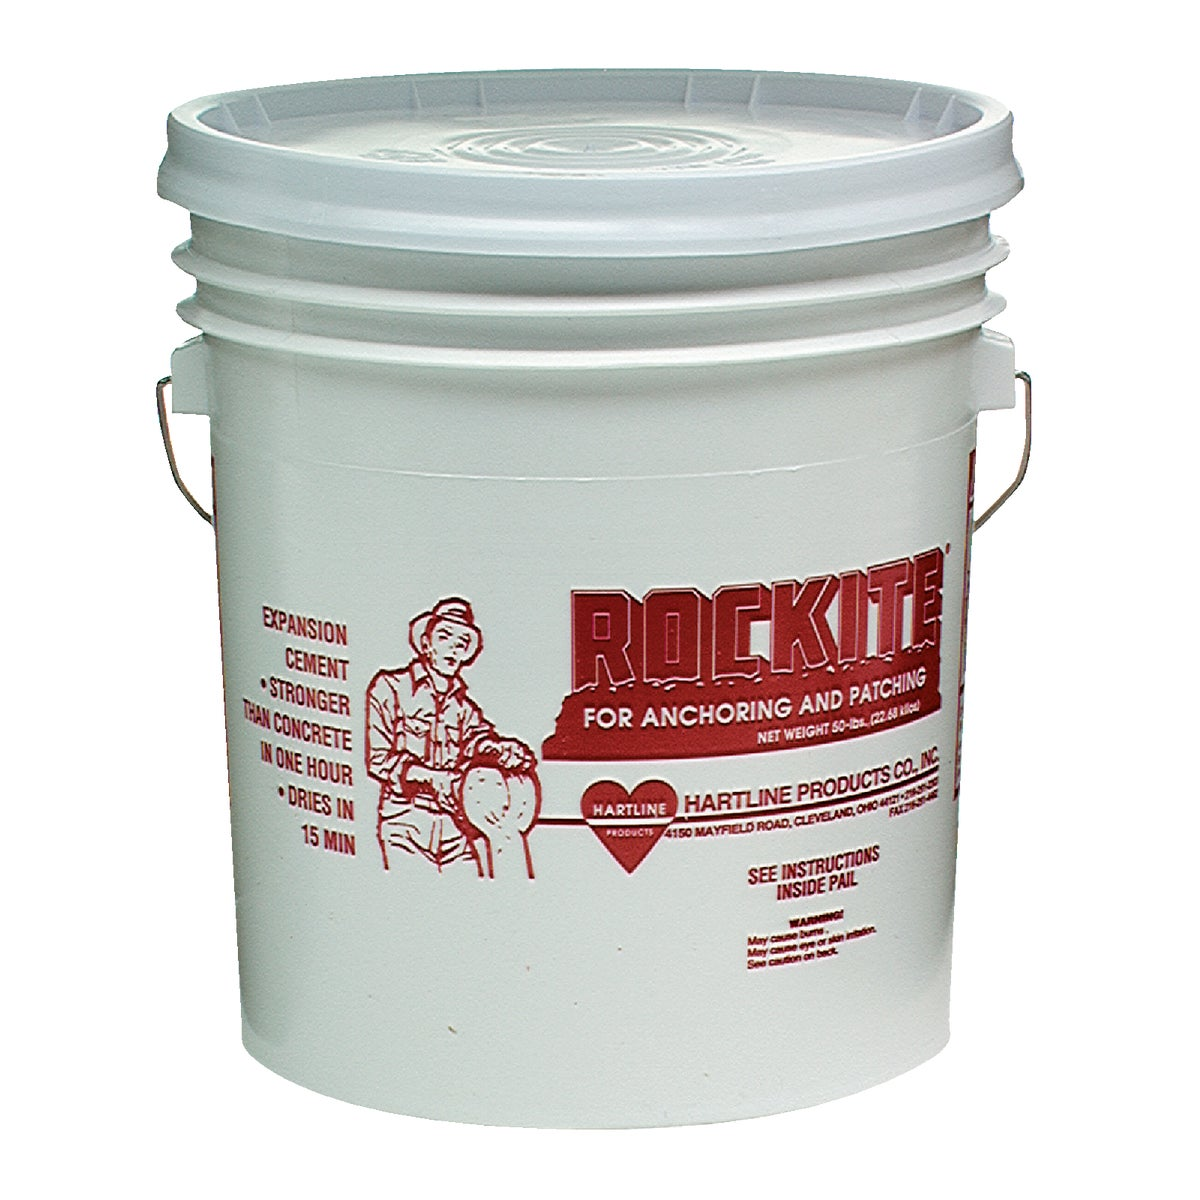 50LB ROCKITE CEMENT - 10051 by Hartline Products